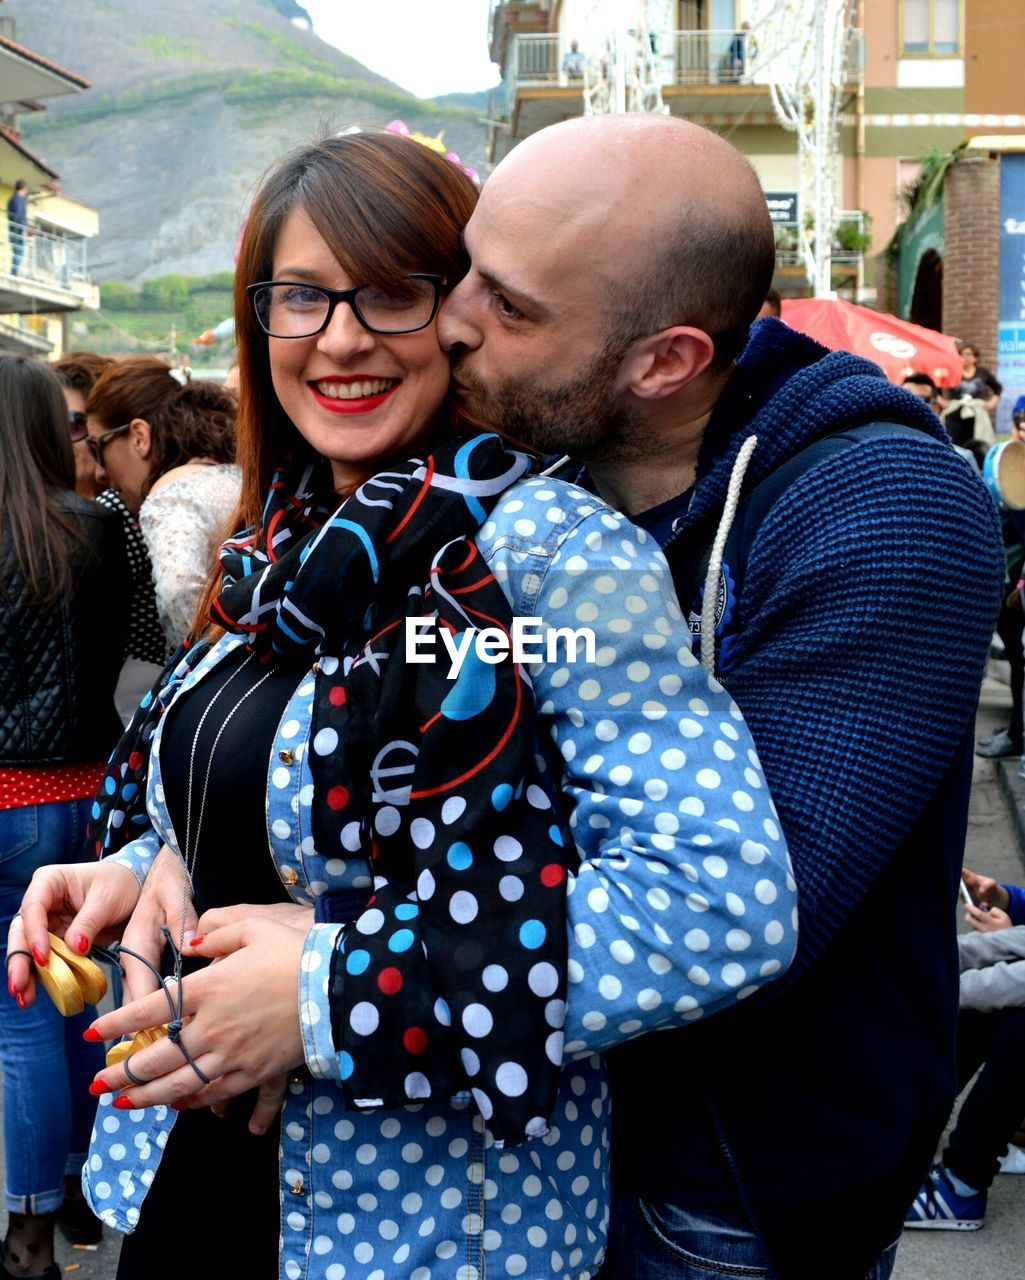 two people, togetherness, heterosexual couple, real people, young adult, young women, love, lifestyles, casual clothing, couple - relationship, city life, young men, smiling, happiness, bonding, outdoors, day, leisure activity, eyeglasses, young couple, standing, city, men, portrait, adult, adults only, people